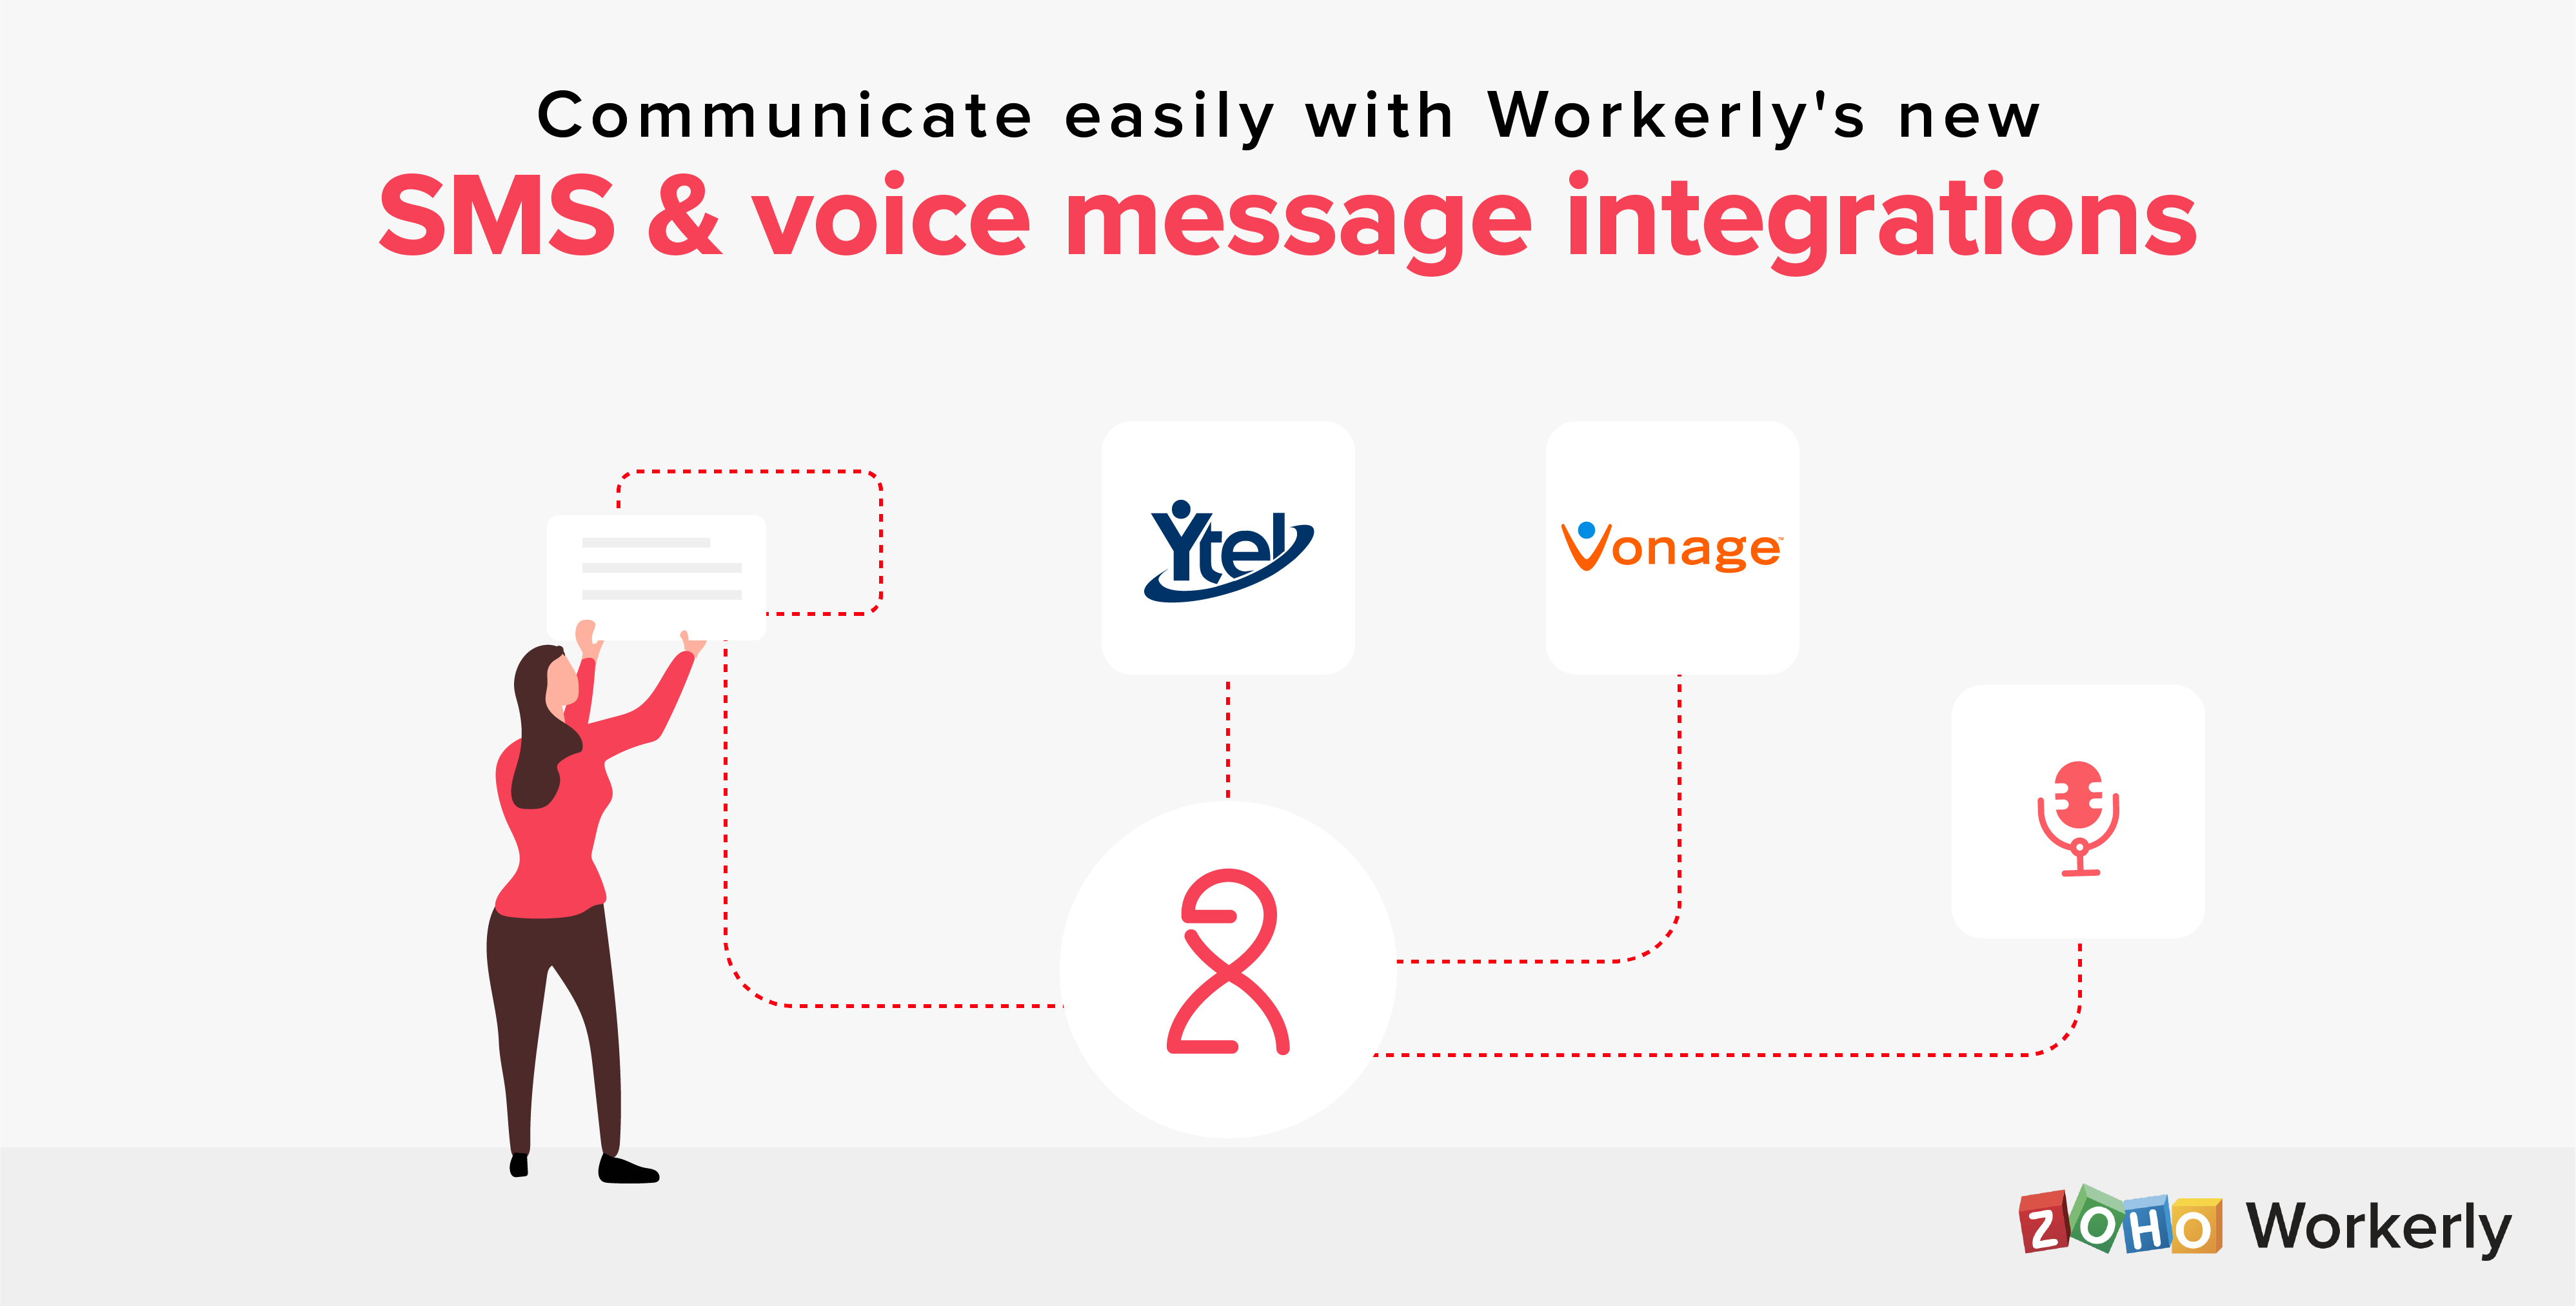 ytel and vonage for zoho workerly